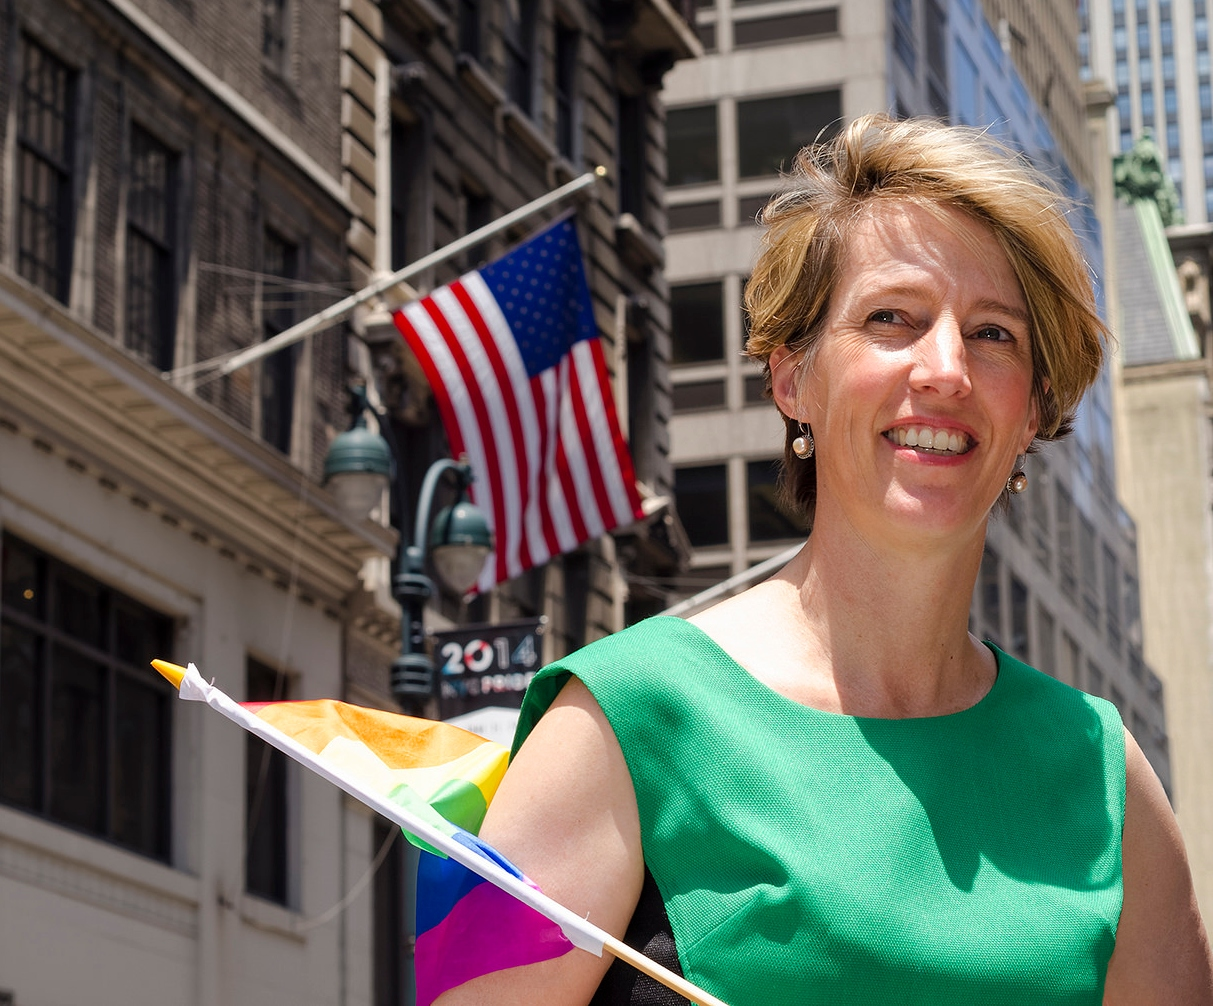 Photo of Zephyr Teachout in New York City, holding LGBT pride flag with a U.S. flag in the background.